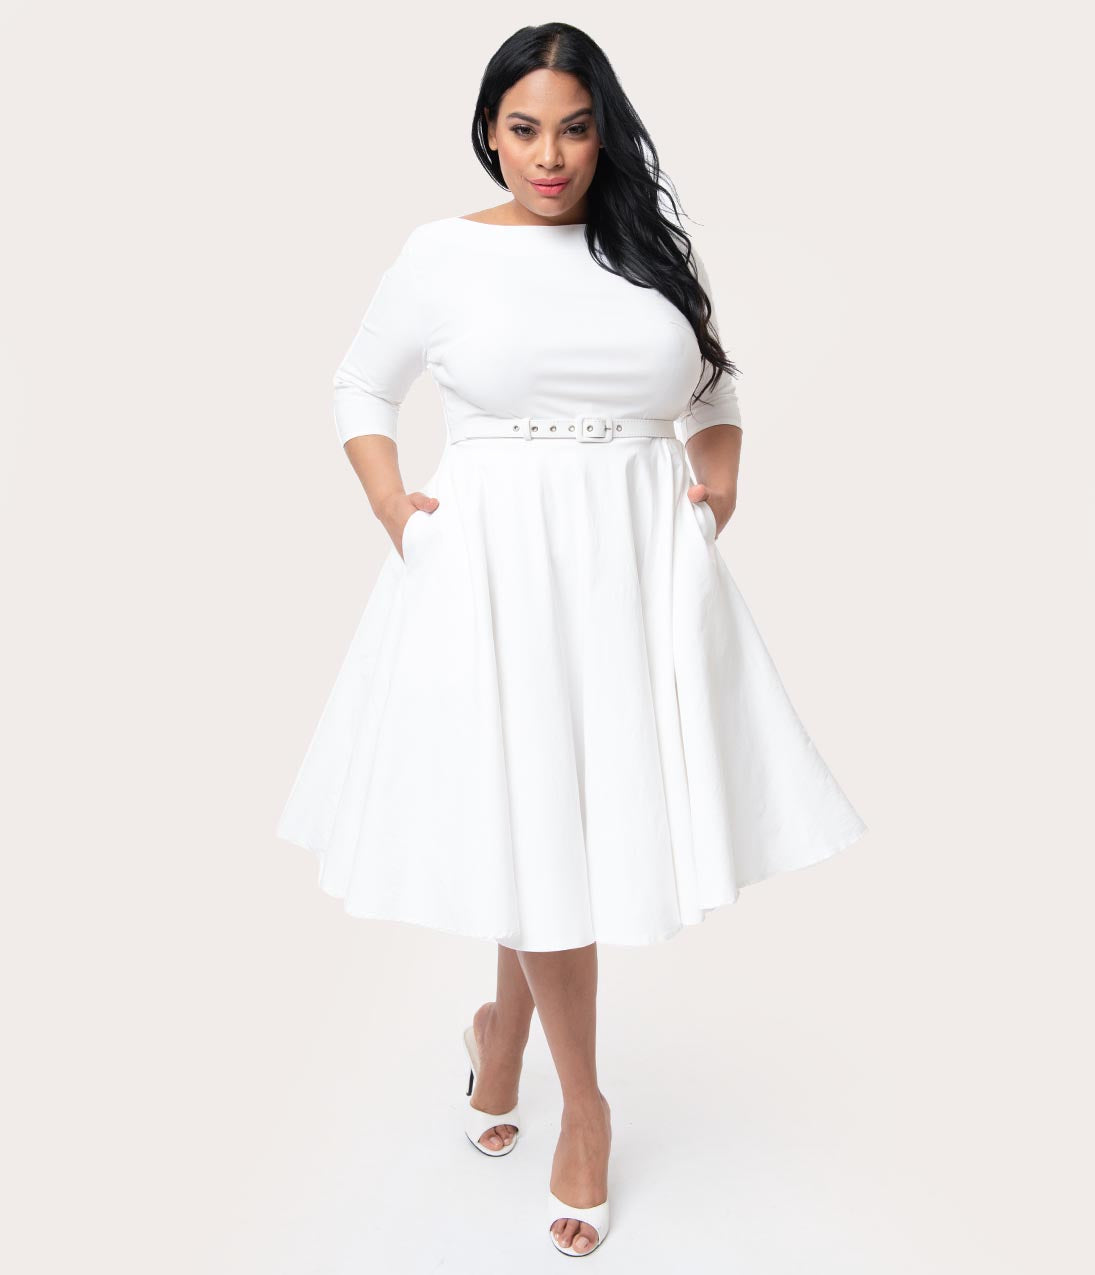 60s 70s Plus Size Dresses, Clothing, Costumes Unique Vintage Plus Size 1950S Style Ivory Stretch Sleeved Devon Swing Dress $88.00 AT vintagedancer.com